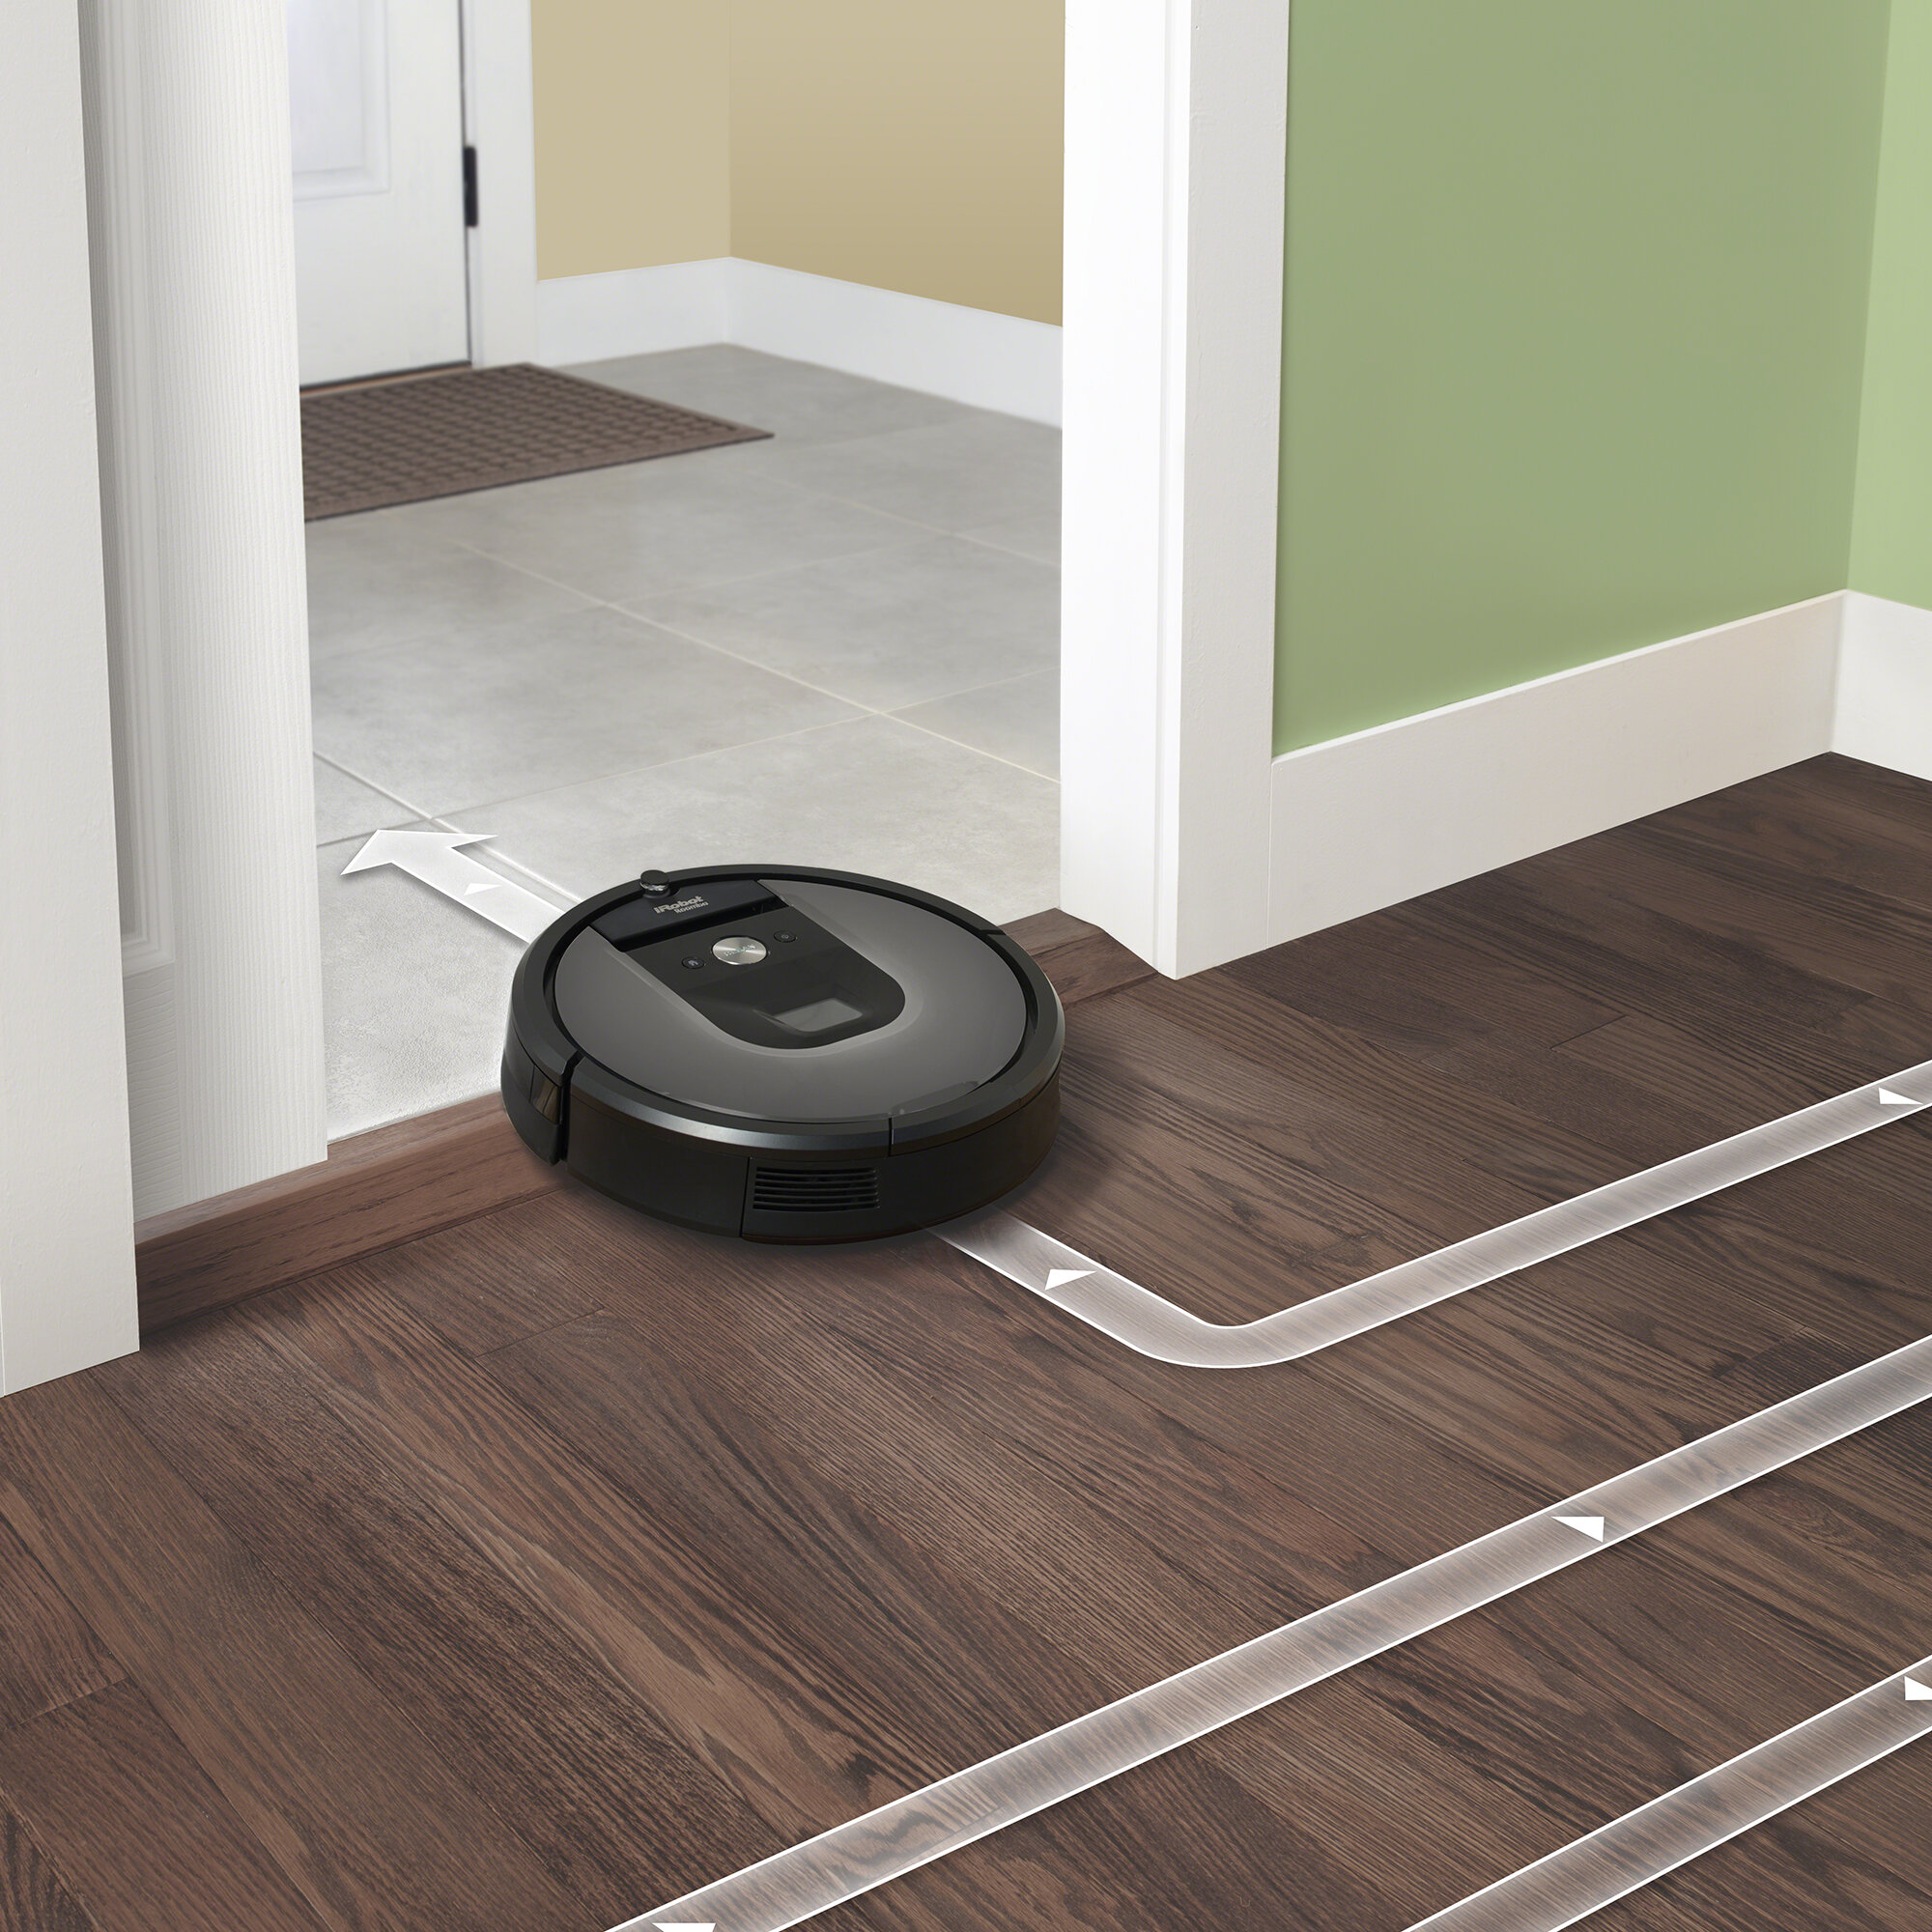 Irobot Roomba 960 Wi Fi Connected